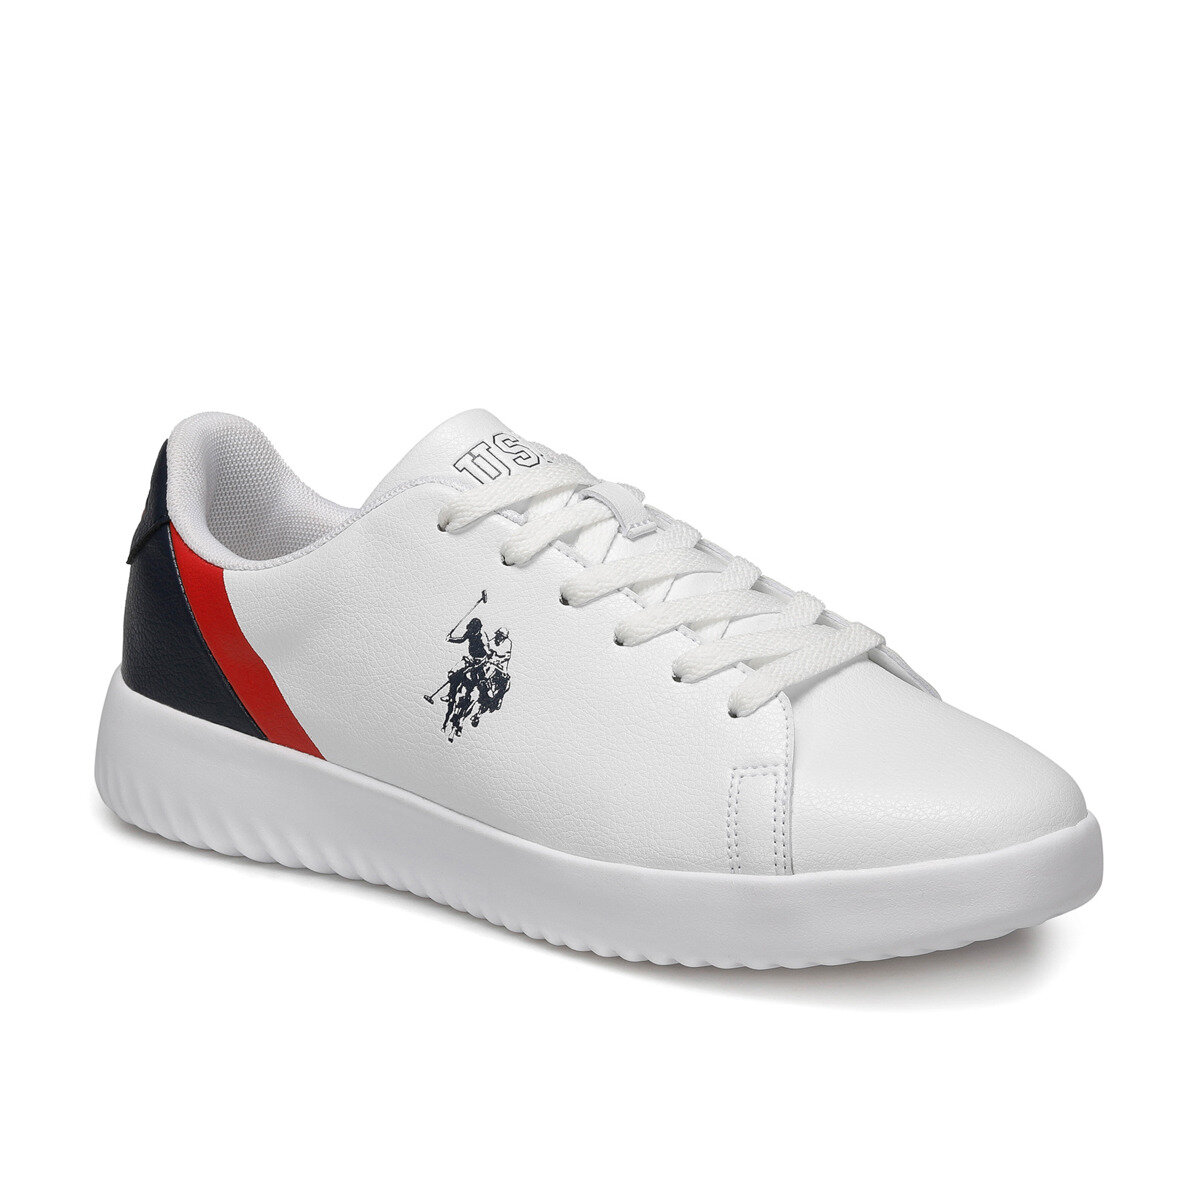 FLO PROSS White Men 'S Sneaker Shoes U.S. POLO ASSN.